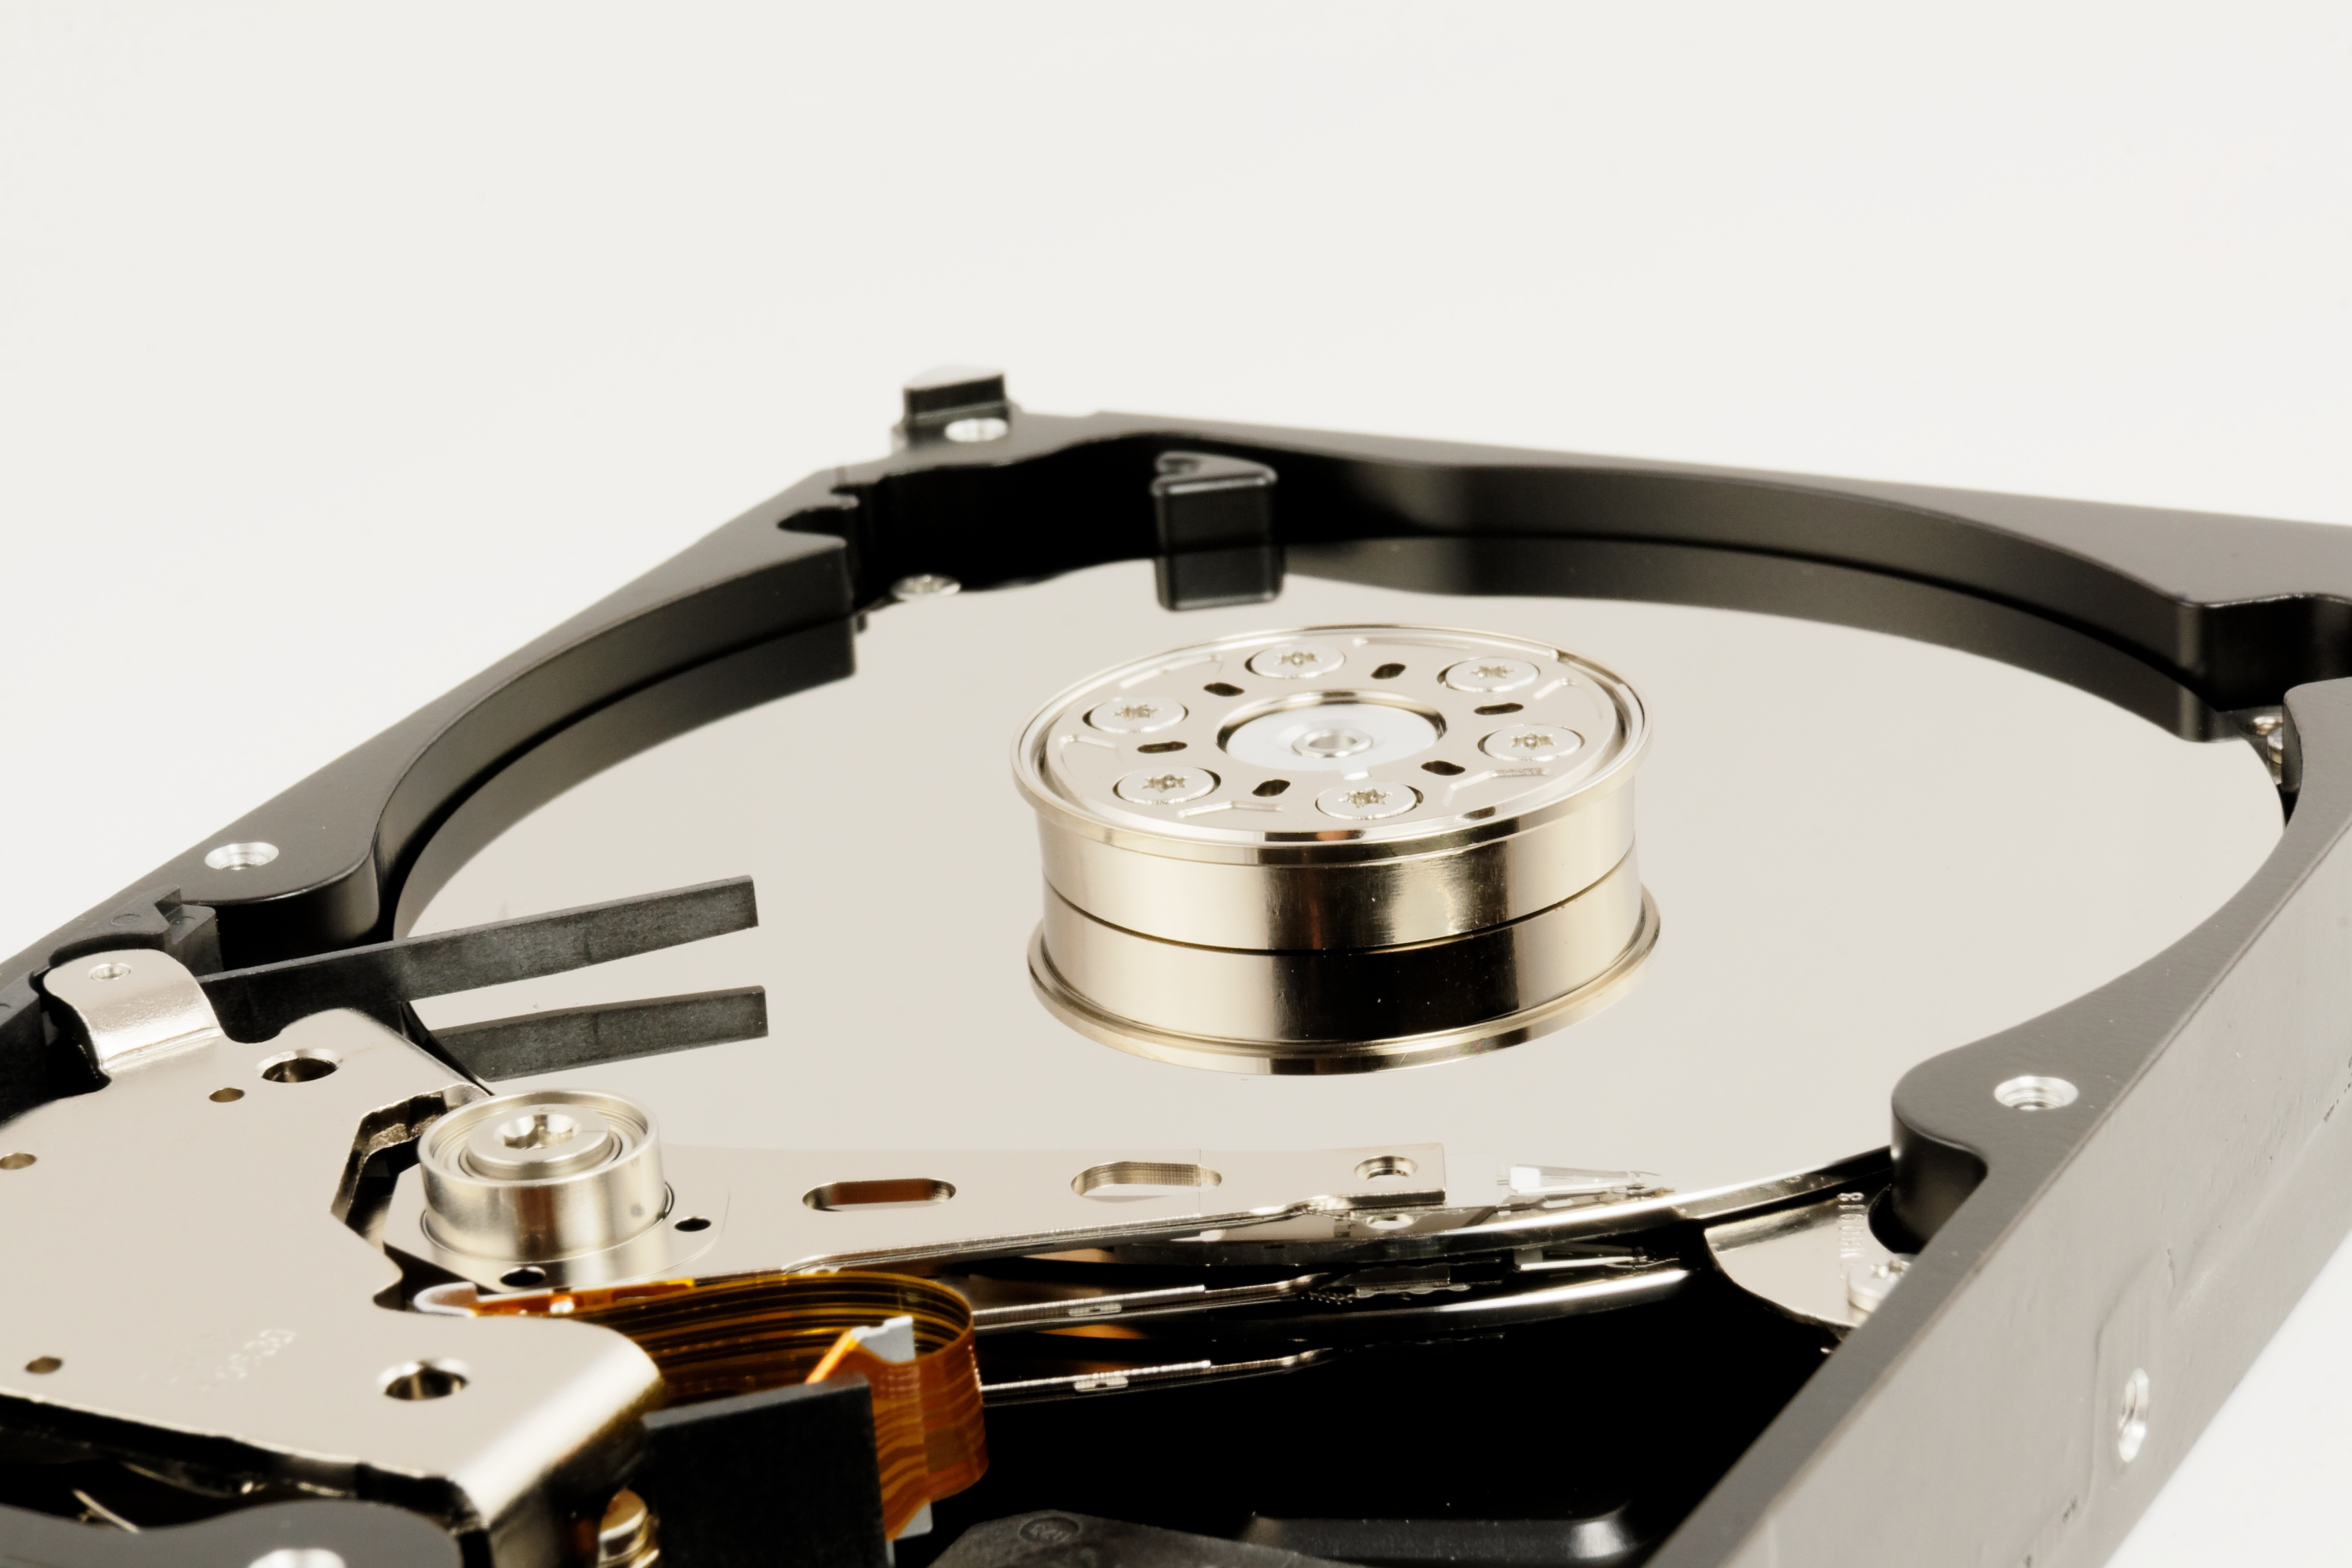 closeup angled shot of hard drive